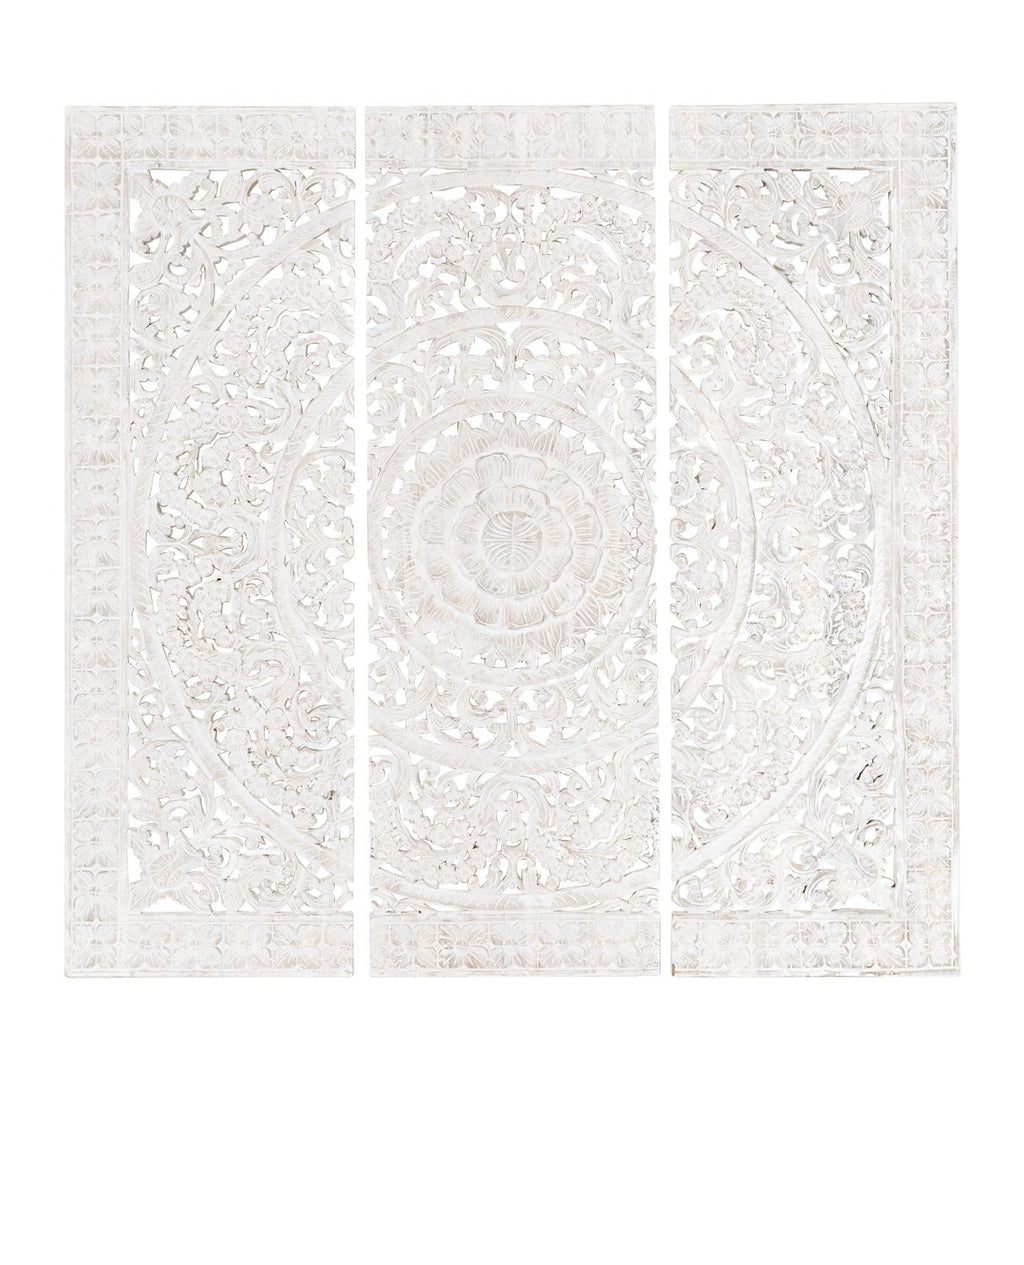 Gisele Carved Panel whitewash Lge 182x182cm - robcousens Outdoor Furniture Factory direct